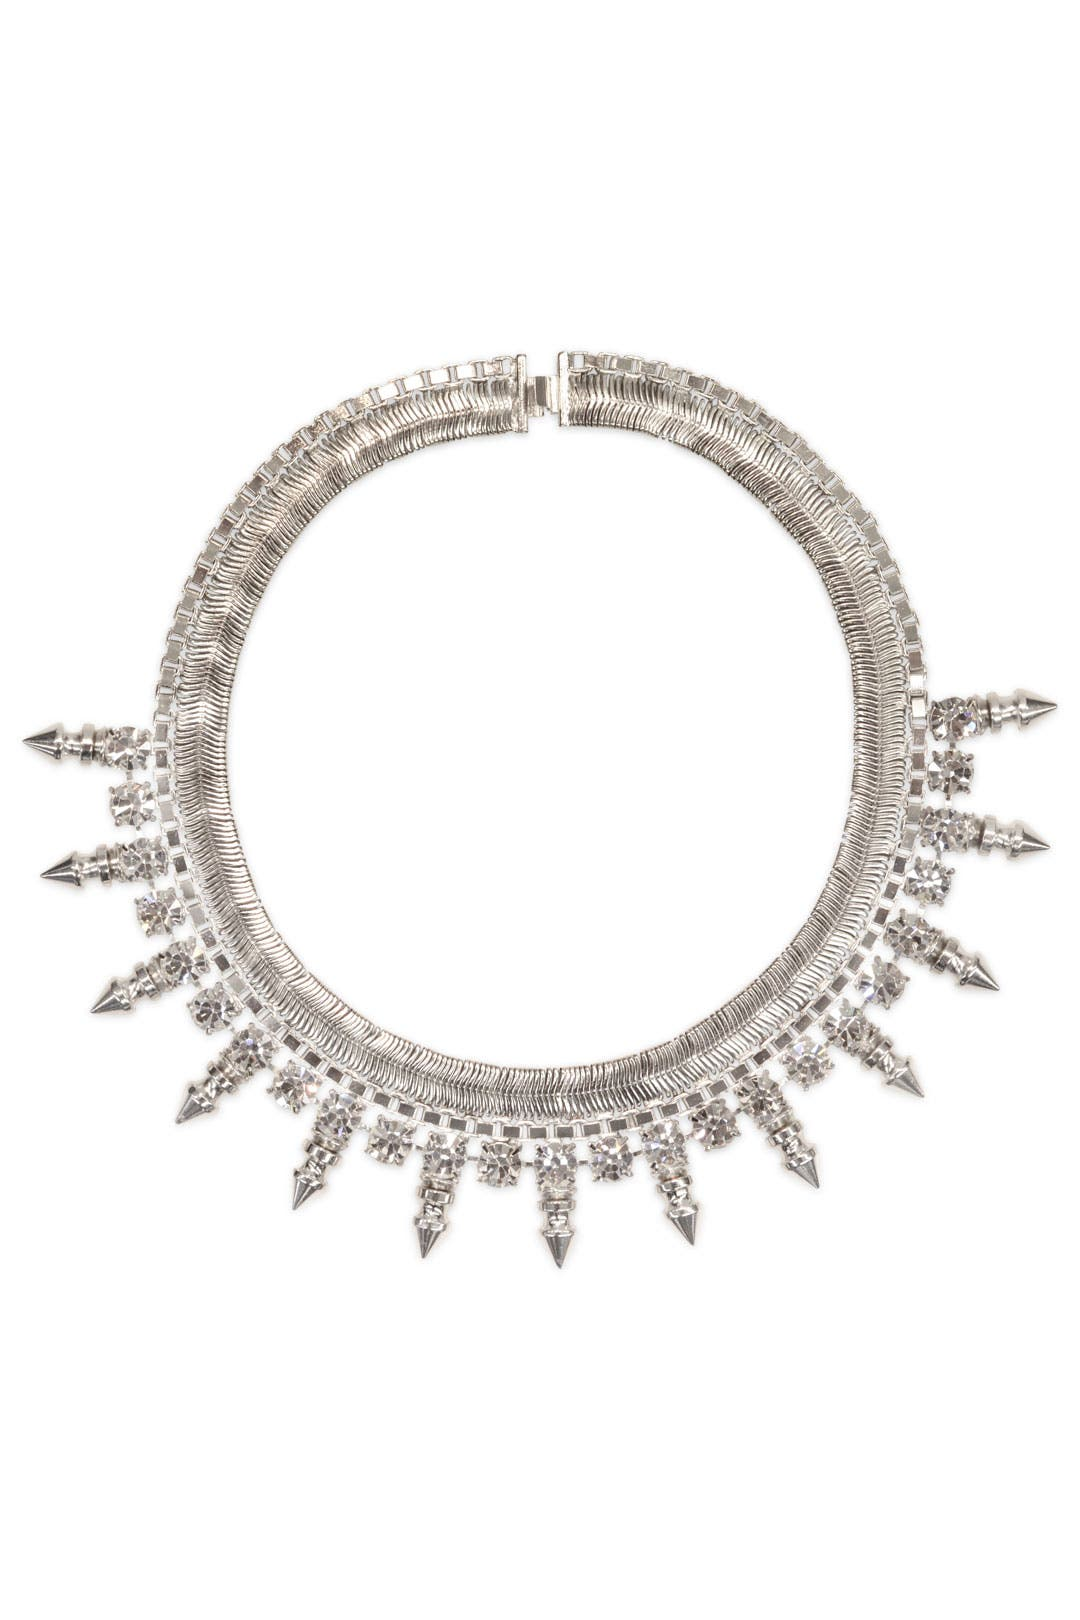 Snowburst Crystal Necklace by Courtney Lee